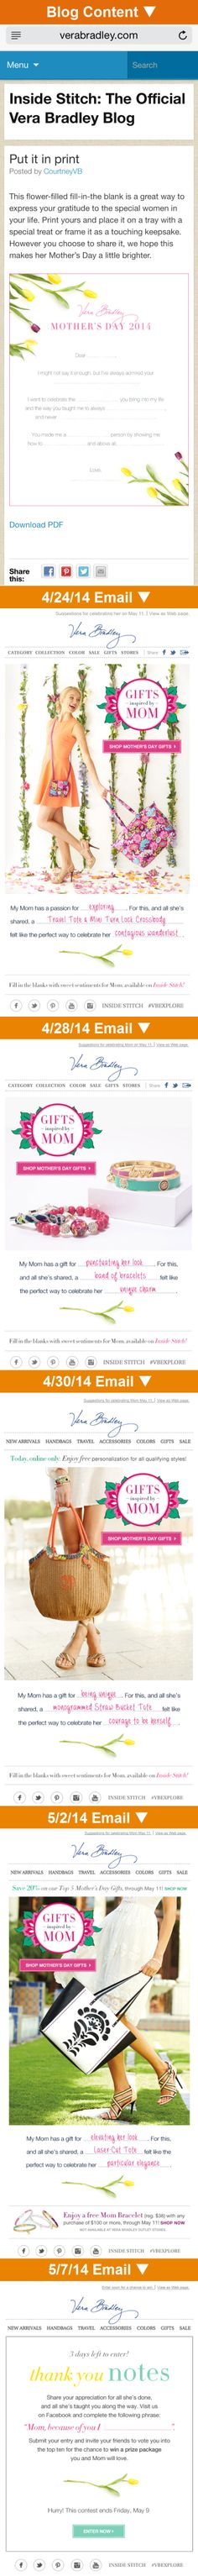 """Vera Bradley :: sent 4/24/14–5/7/14 :: Because she wants to see the world… :: For Mother's Day, Vera Bradley created a downloadable fill-in-the-blank PDF to help customers """"express your gratitude to the special women in your life."""" They then mirror the fill-in-the-blank style creatively in these promotional emails. Nice cross-channel campaign that connects sentiment to promotions. —Chad White, Lead Research Analyst, Salesforce ExactTarget Marketing Cloud"""